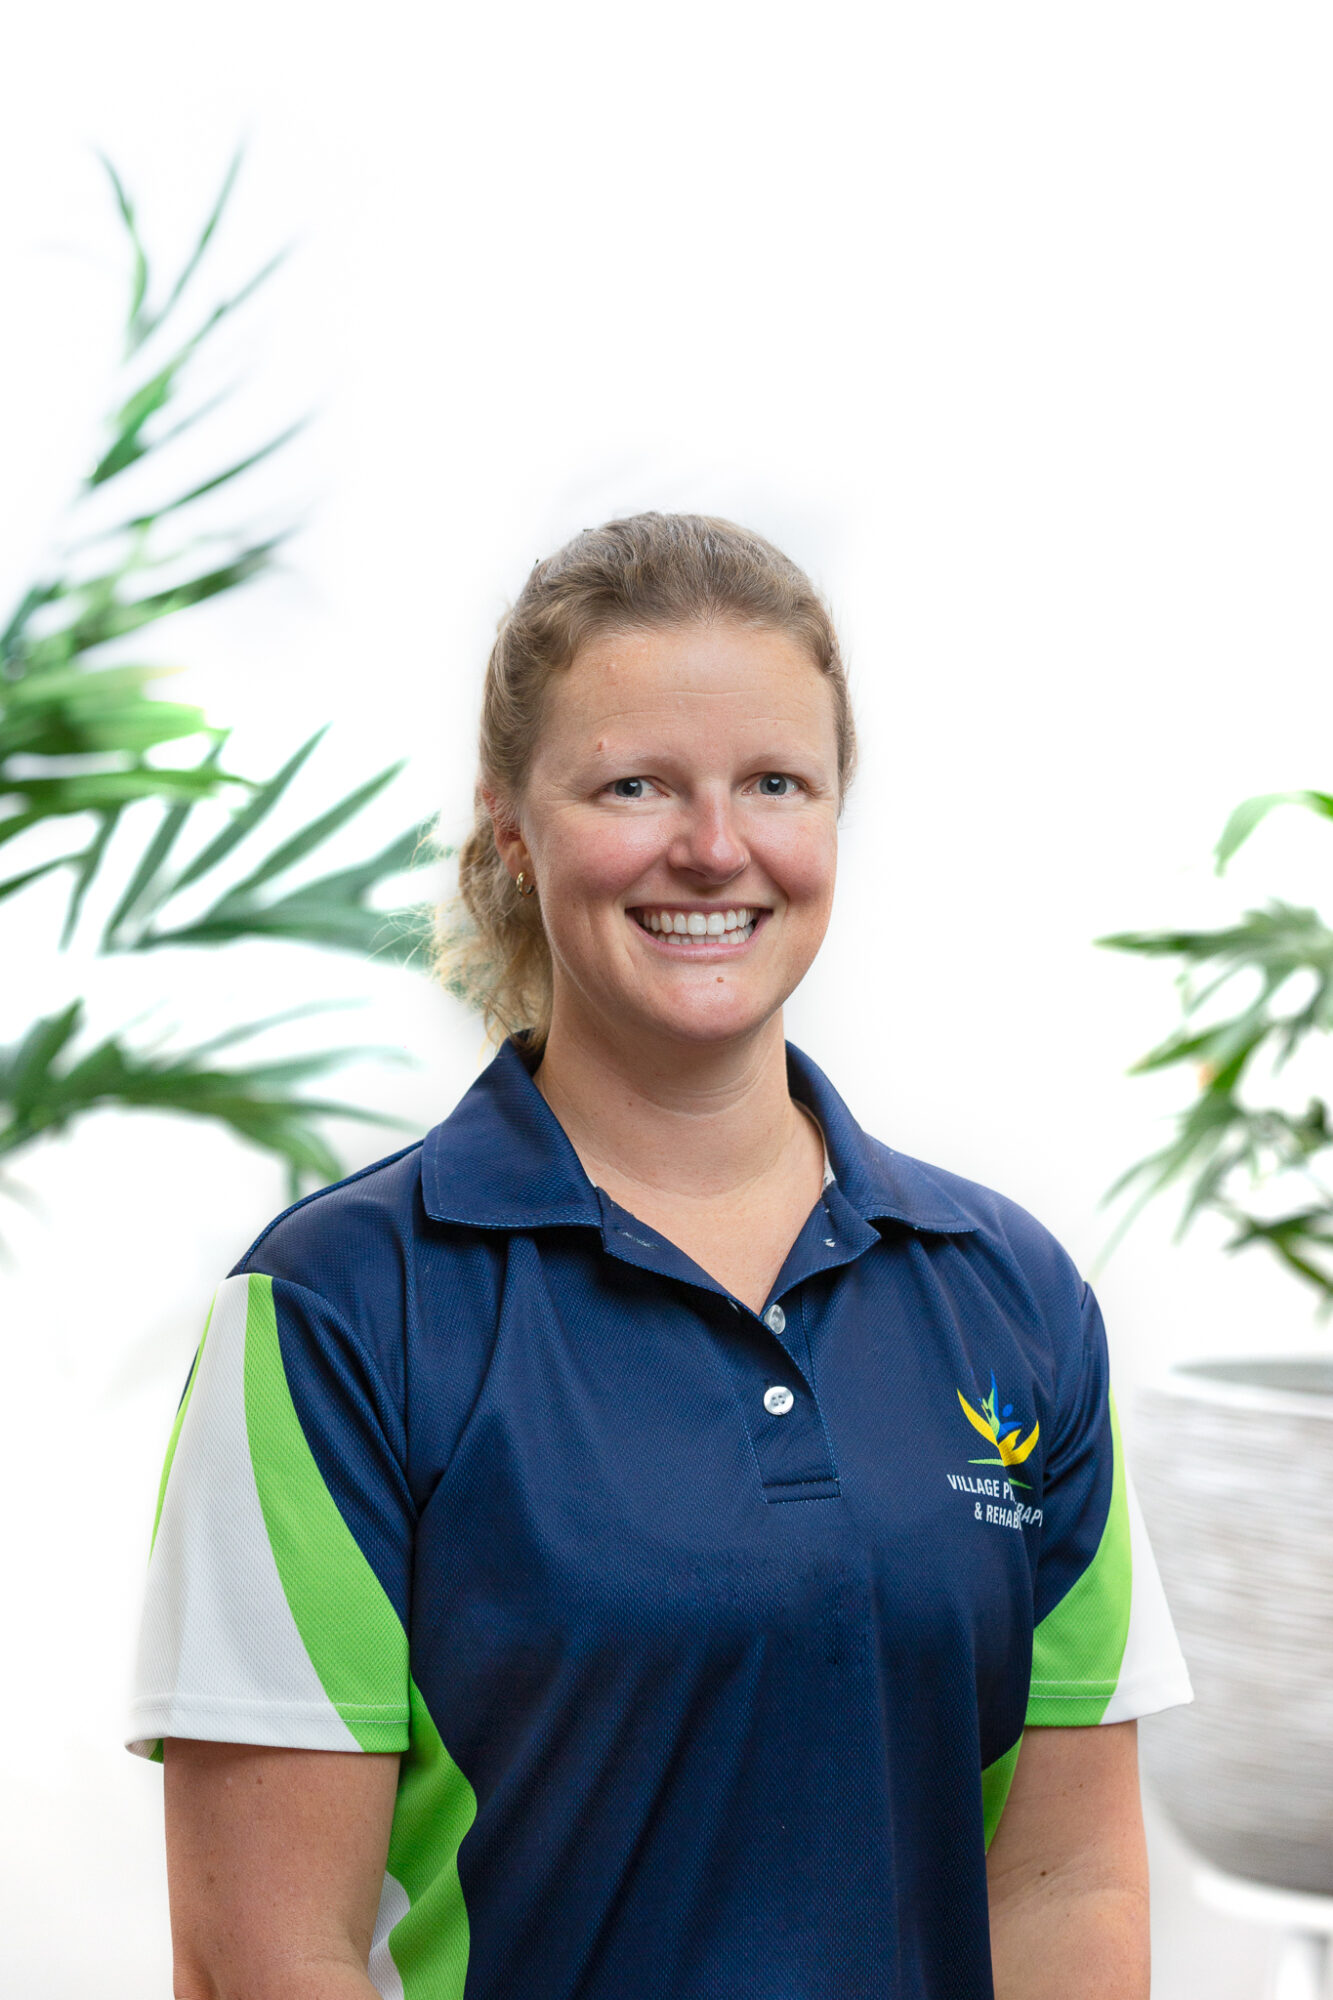 Madelayne Beevers from Village Physiotherapy Shellharbour